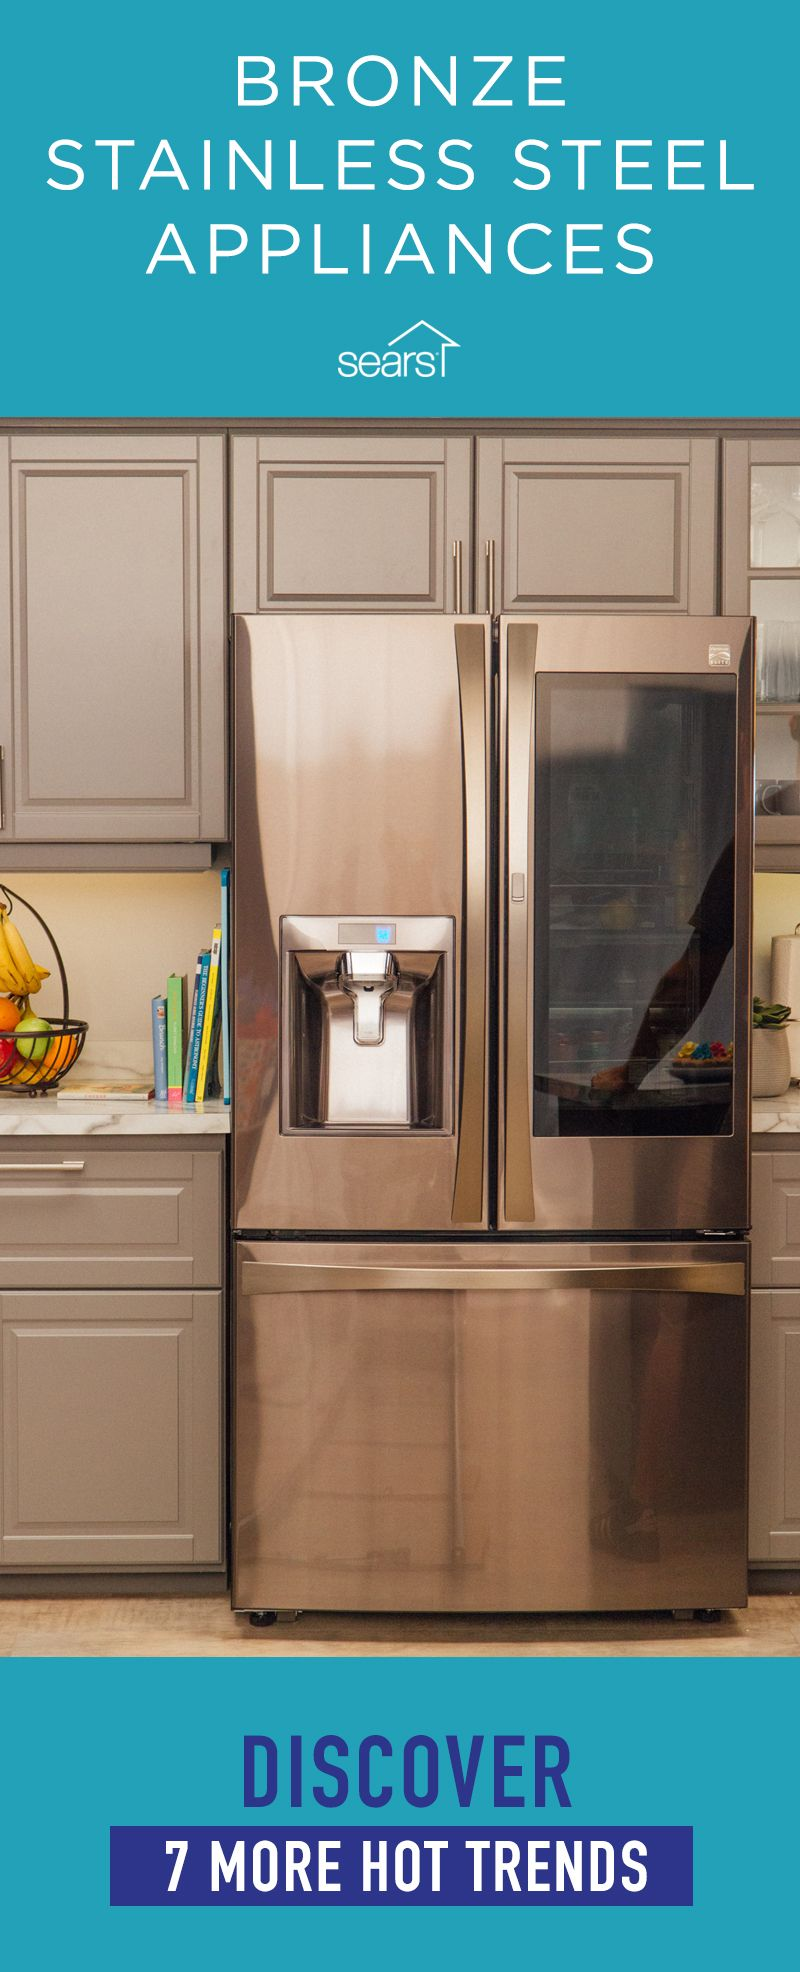 Bronze Stainless Steel Appliances Are Just One Of This Year S Hot Appliance Trends Applia Remodel Kitchen Appliances Copper Kitchen Outdoor Kitchen Appliances